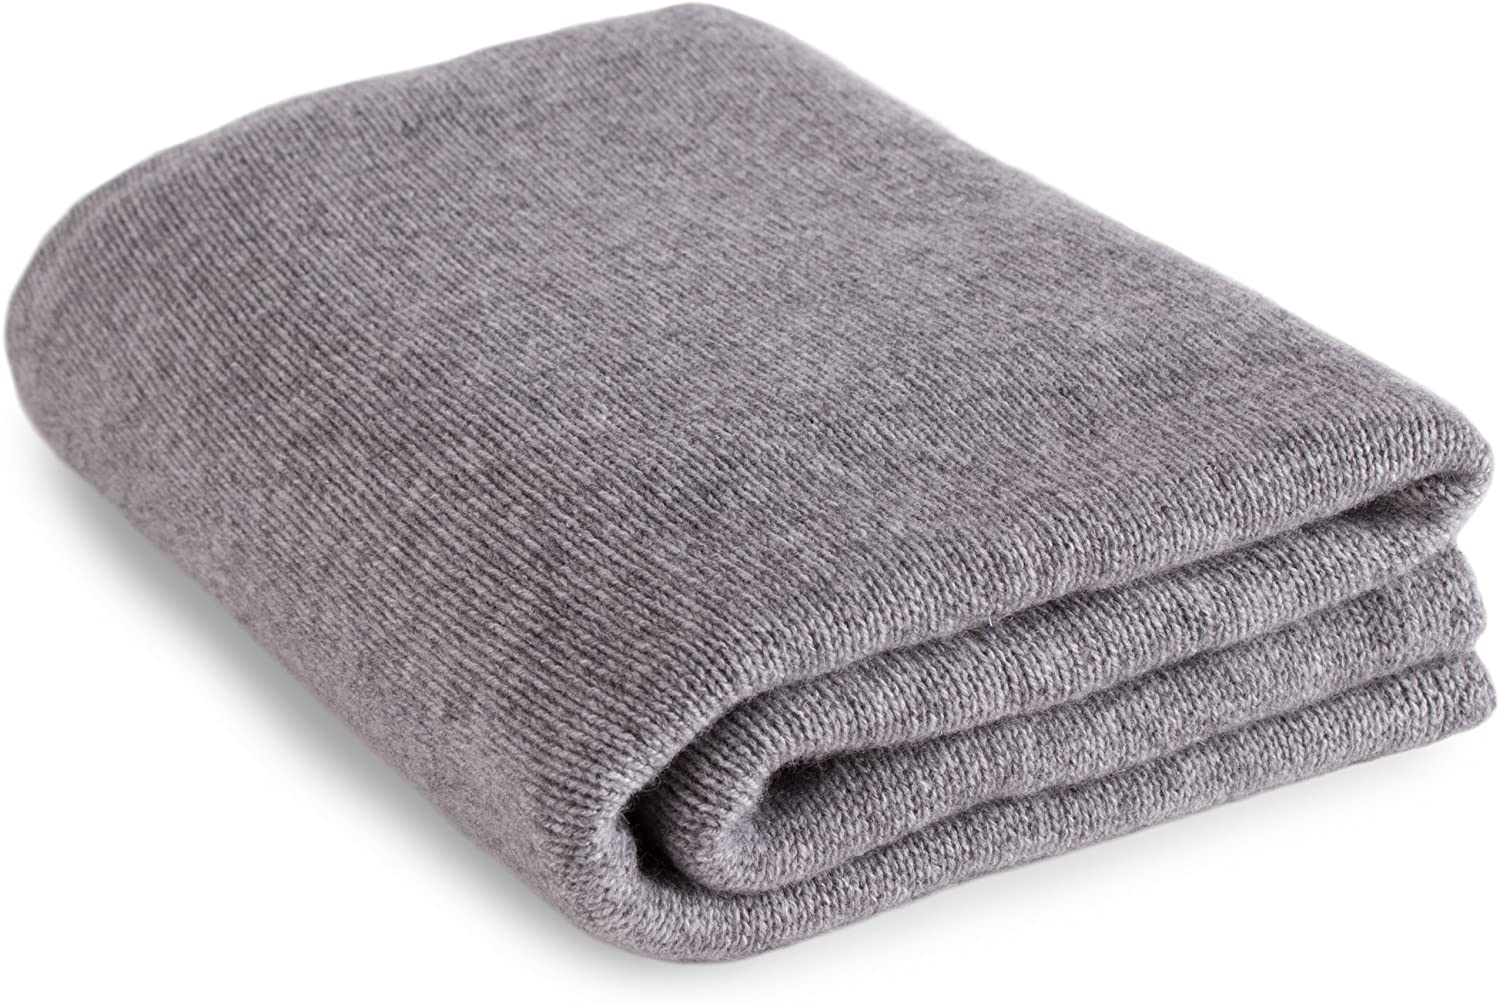 Love Cashmere Luxurious 100% Cashmere Travel Wrap Blanket - Light Gray - Handmade in Scotland RRP $660